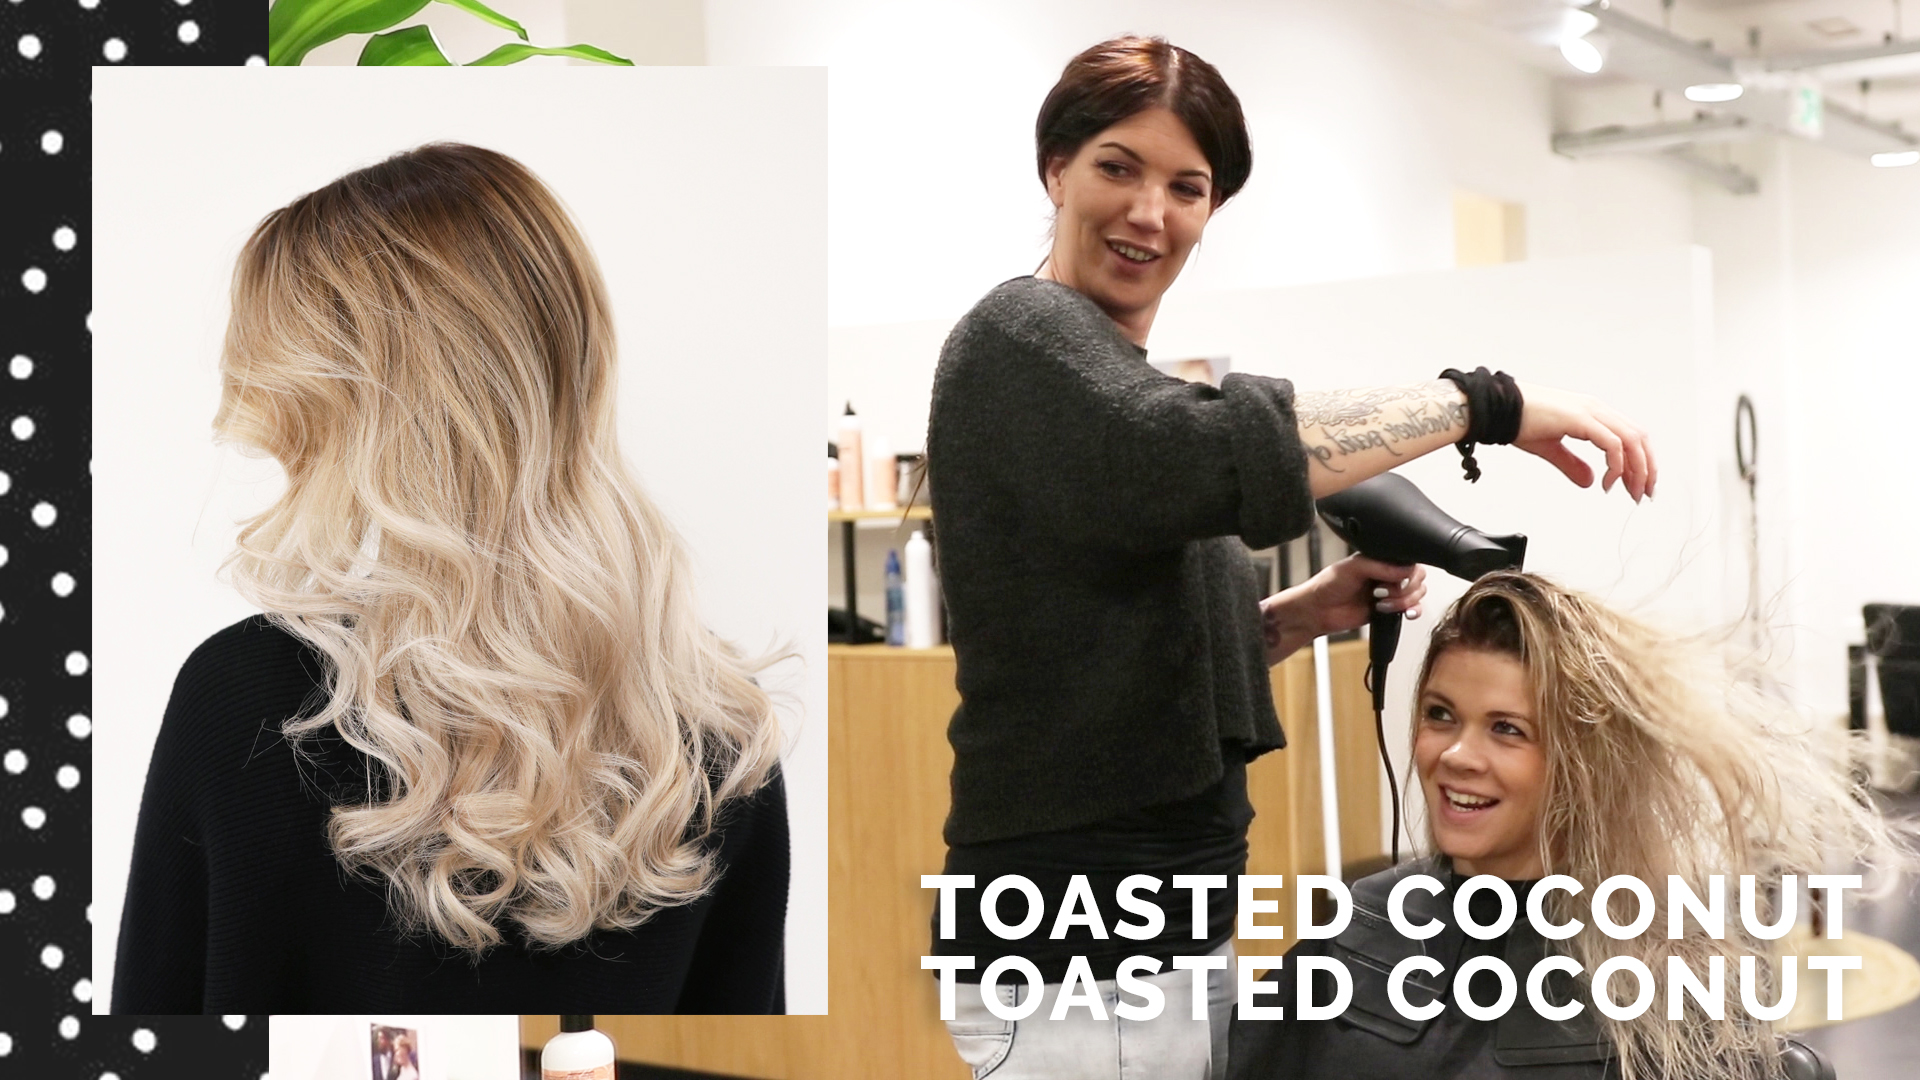 Make-over: Toasted coconut